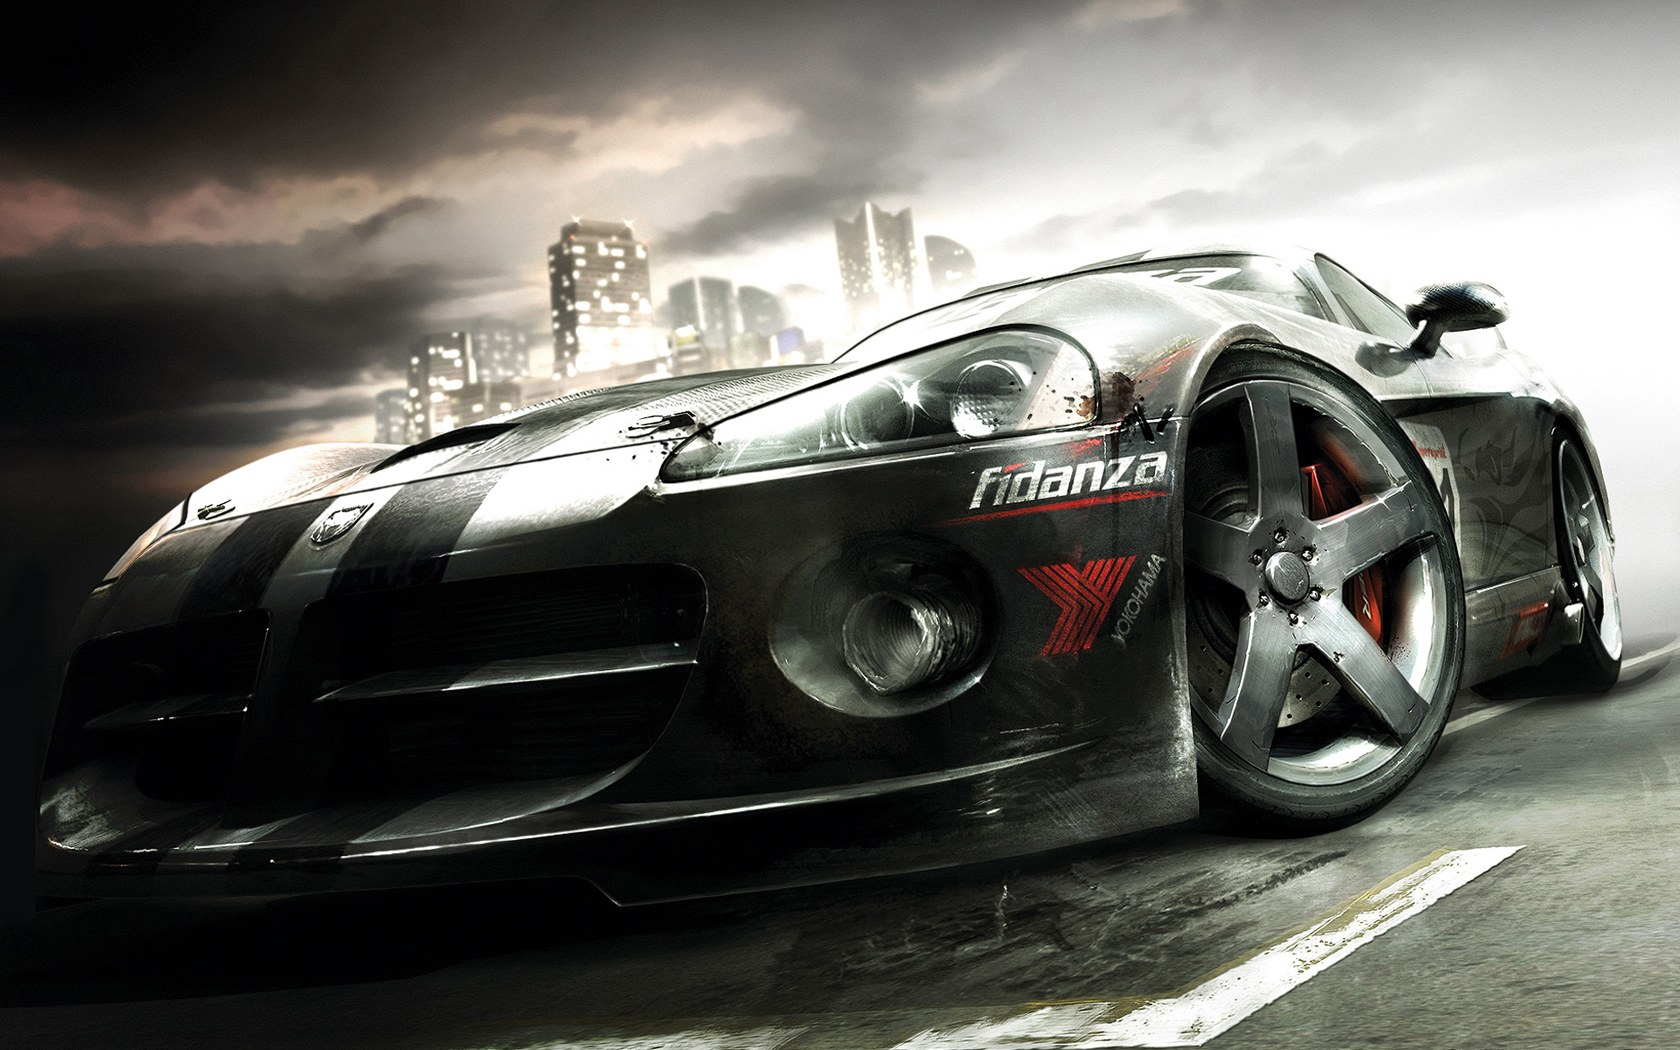 Cool Race Car wallpapers from Car Race Games 1680*1050 NO.21 Wallpaper